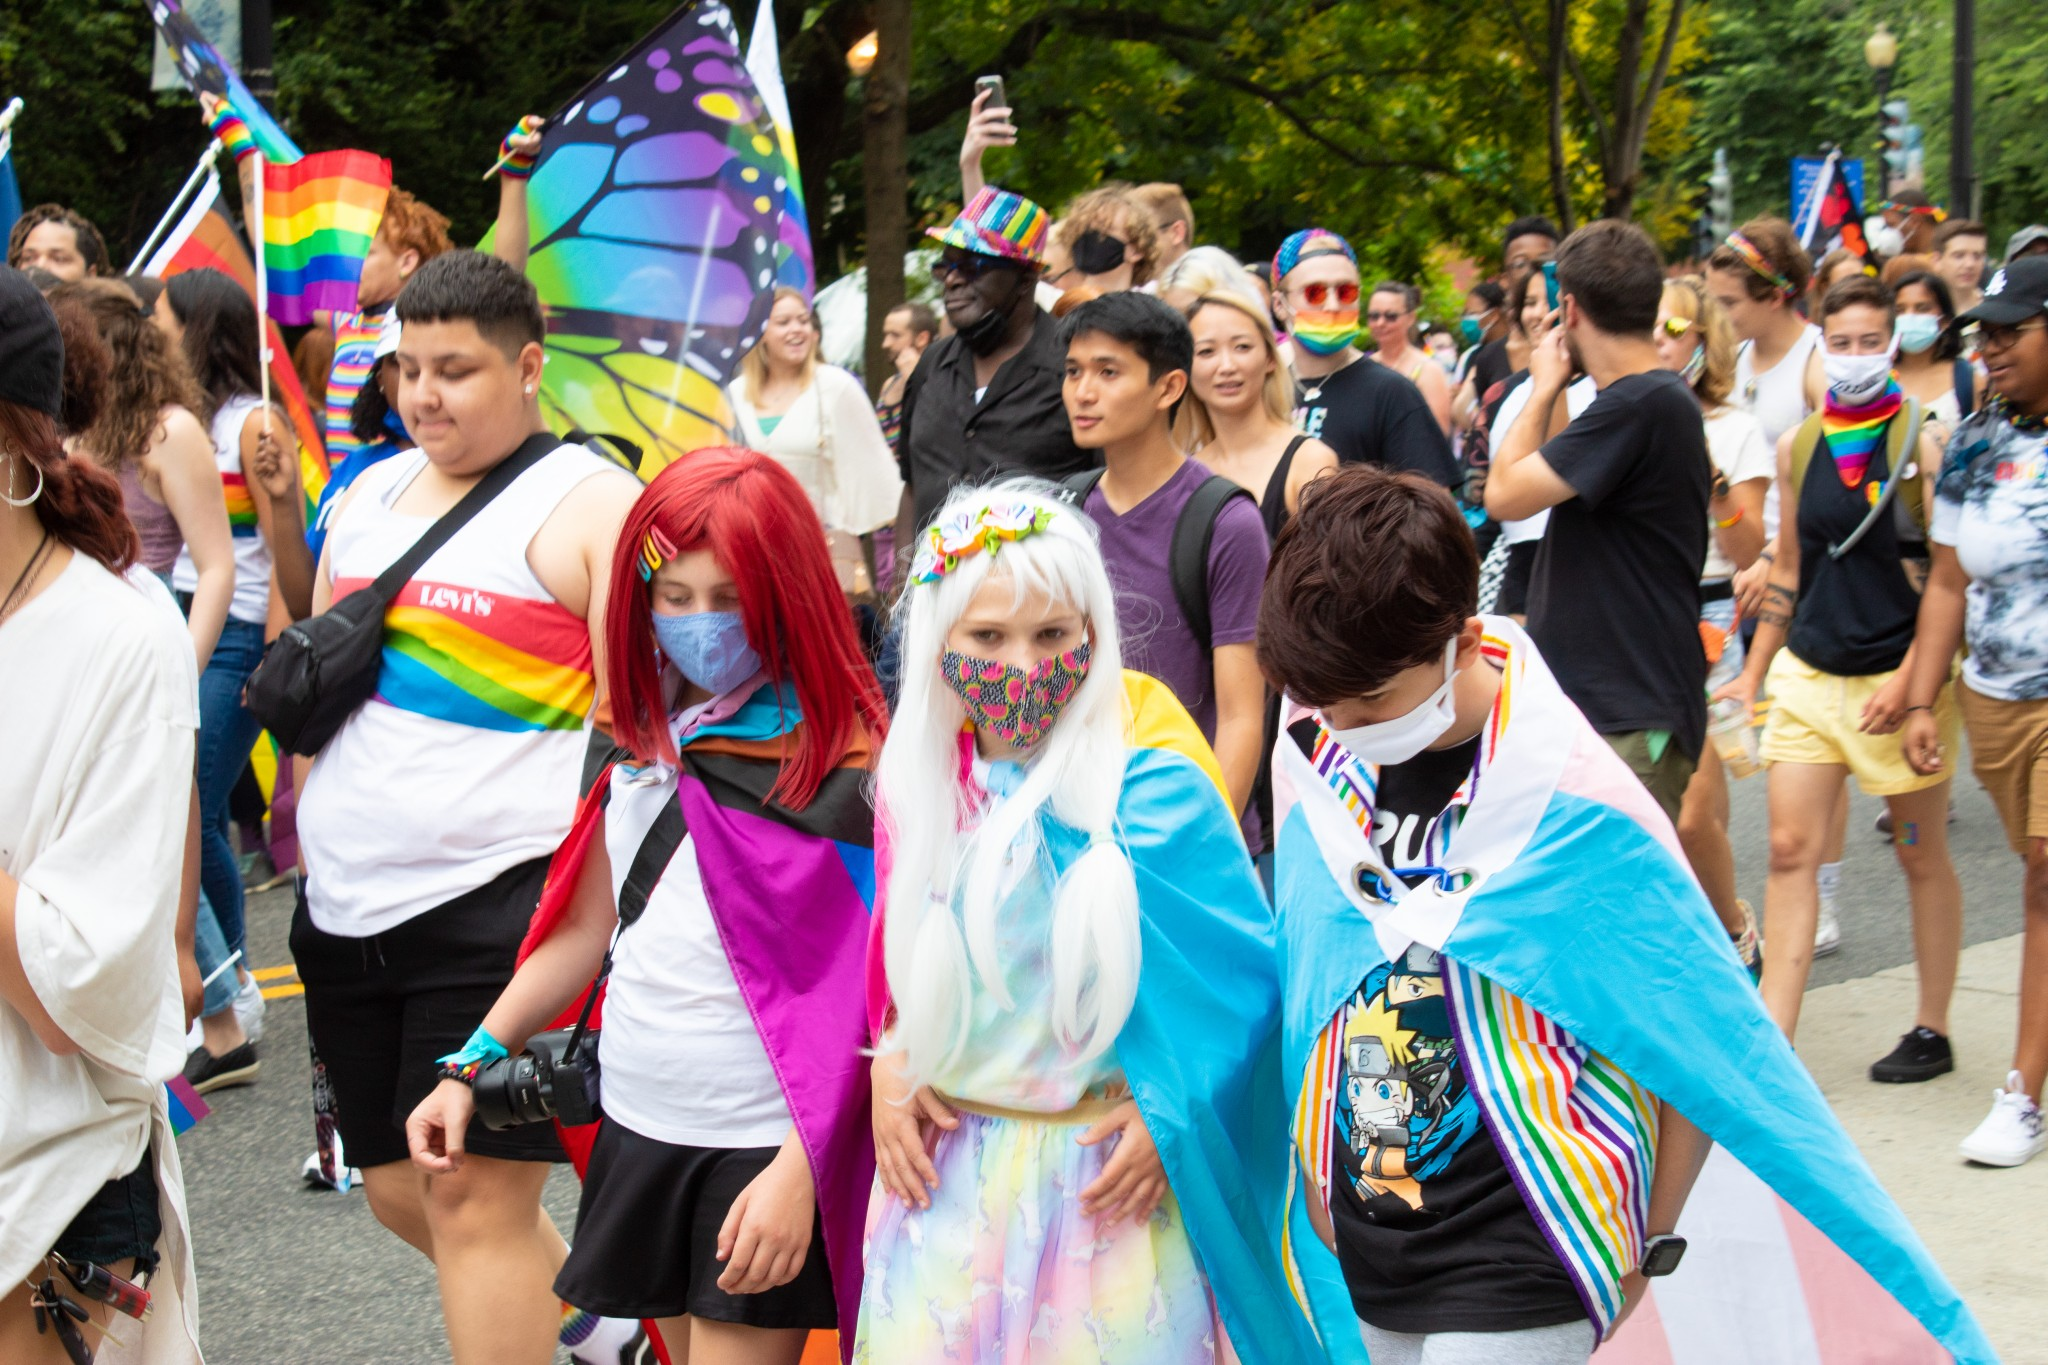 Children who identify as transgender march in Washington, D.C.'s annual Capital Pride Walk & Rally (The American Spectator)